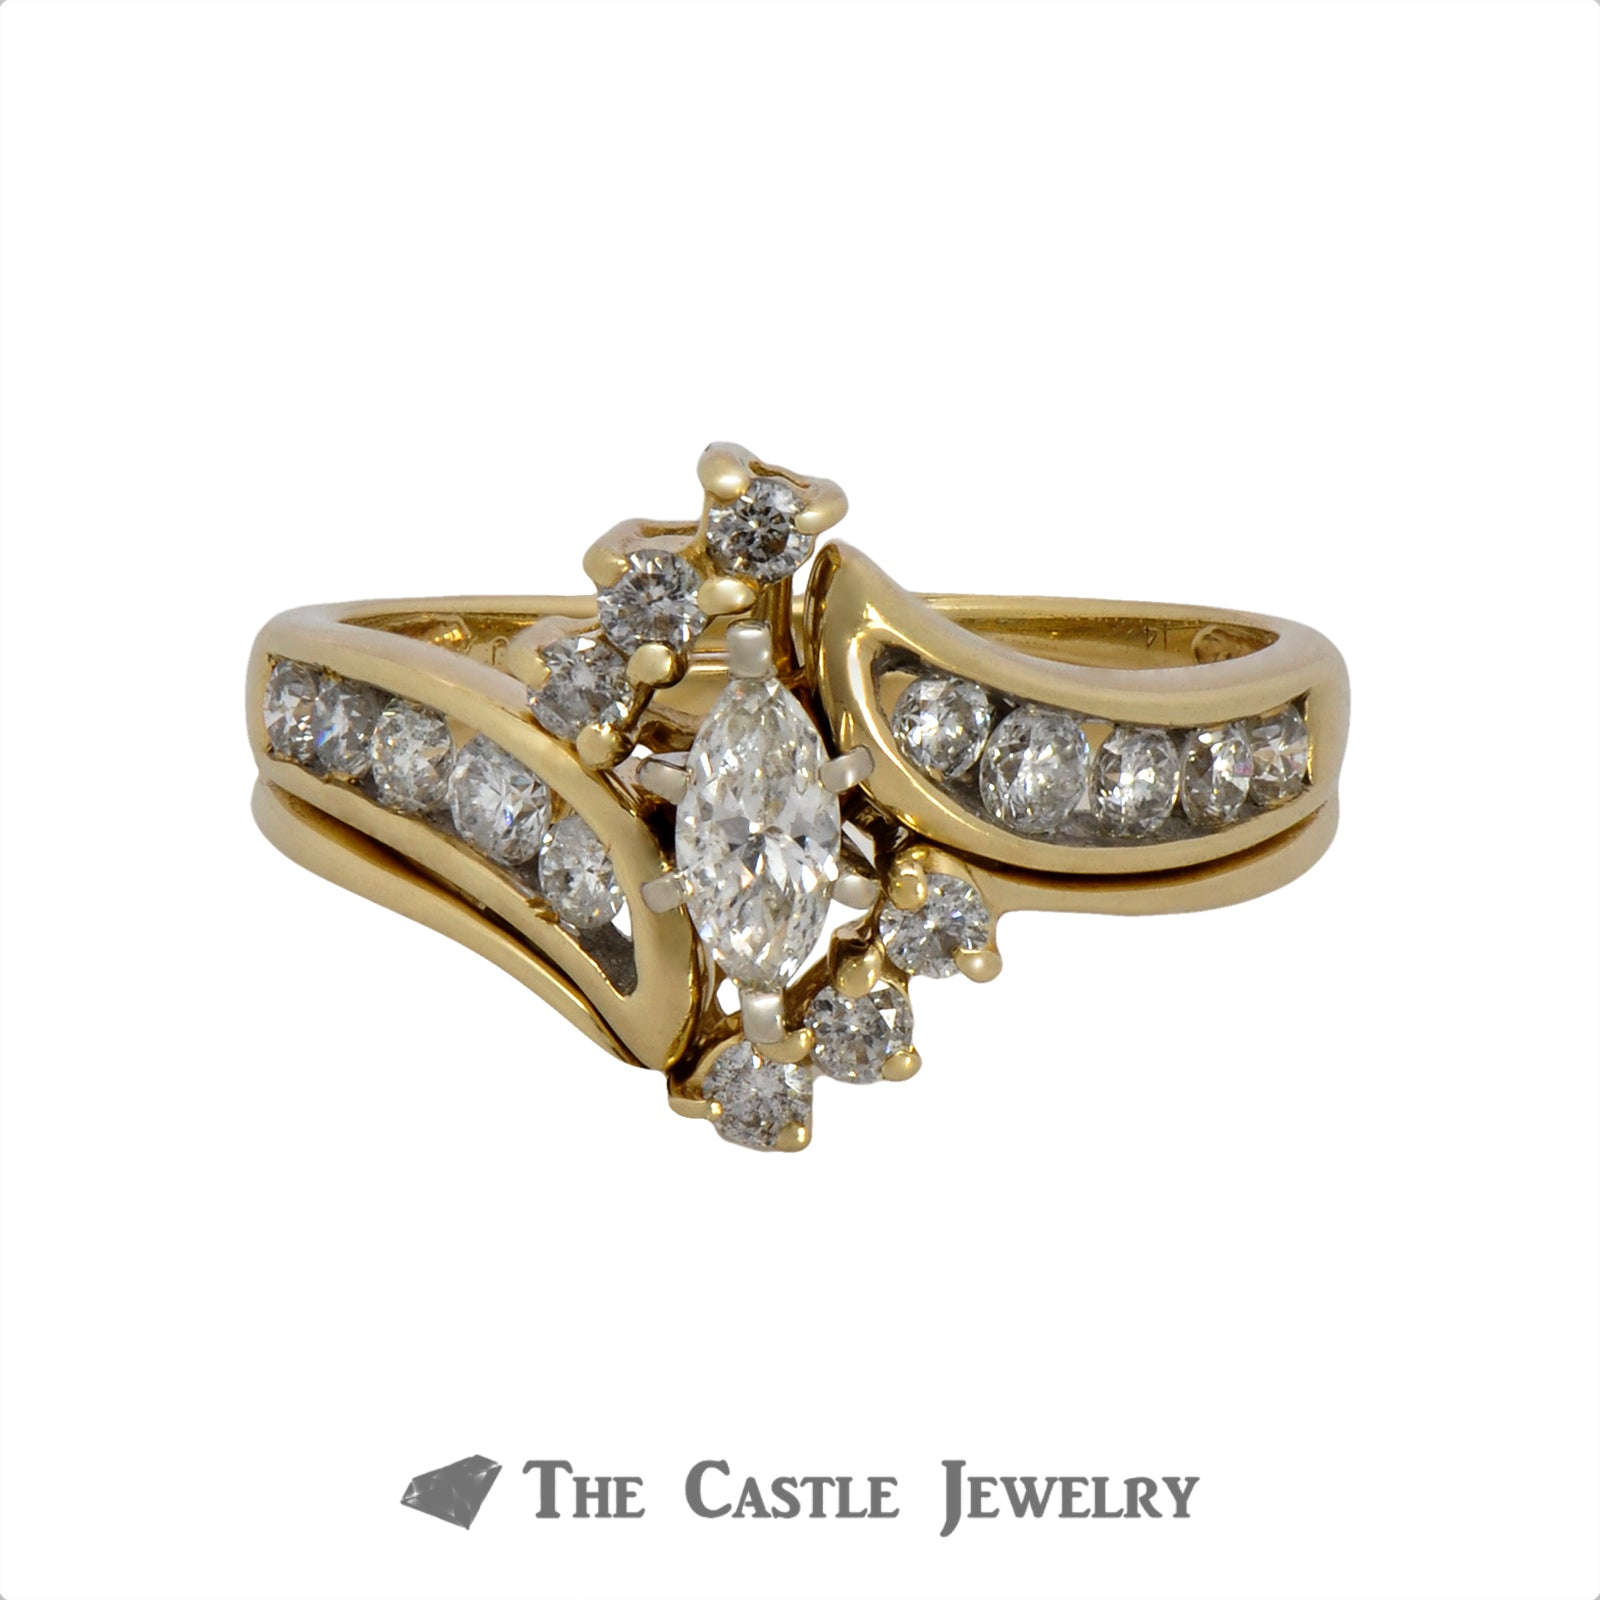 Marquise Cut Diamond Bridal Set with Round Diamond Accents in 14k Yellow Gold